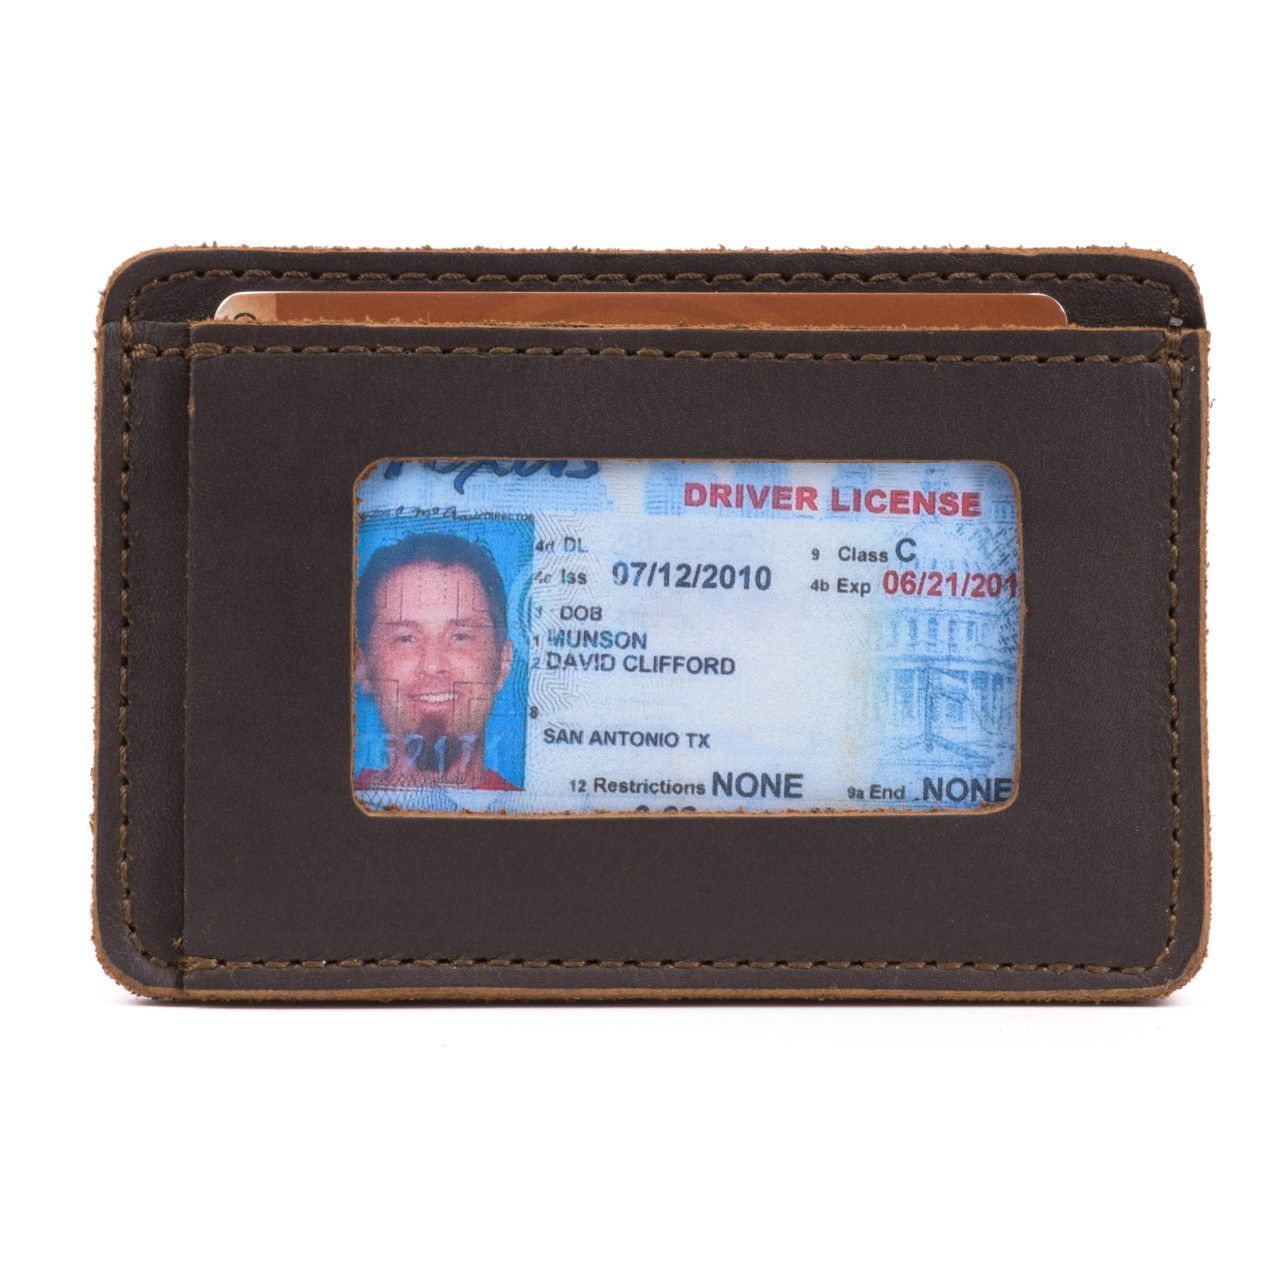 leather front pocket wallet in dark coffee brown leather with a visible driving license